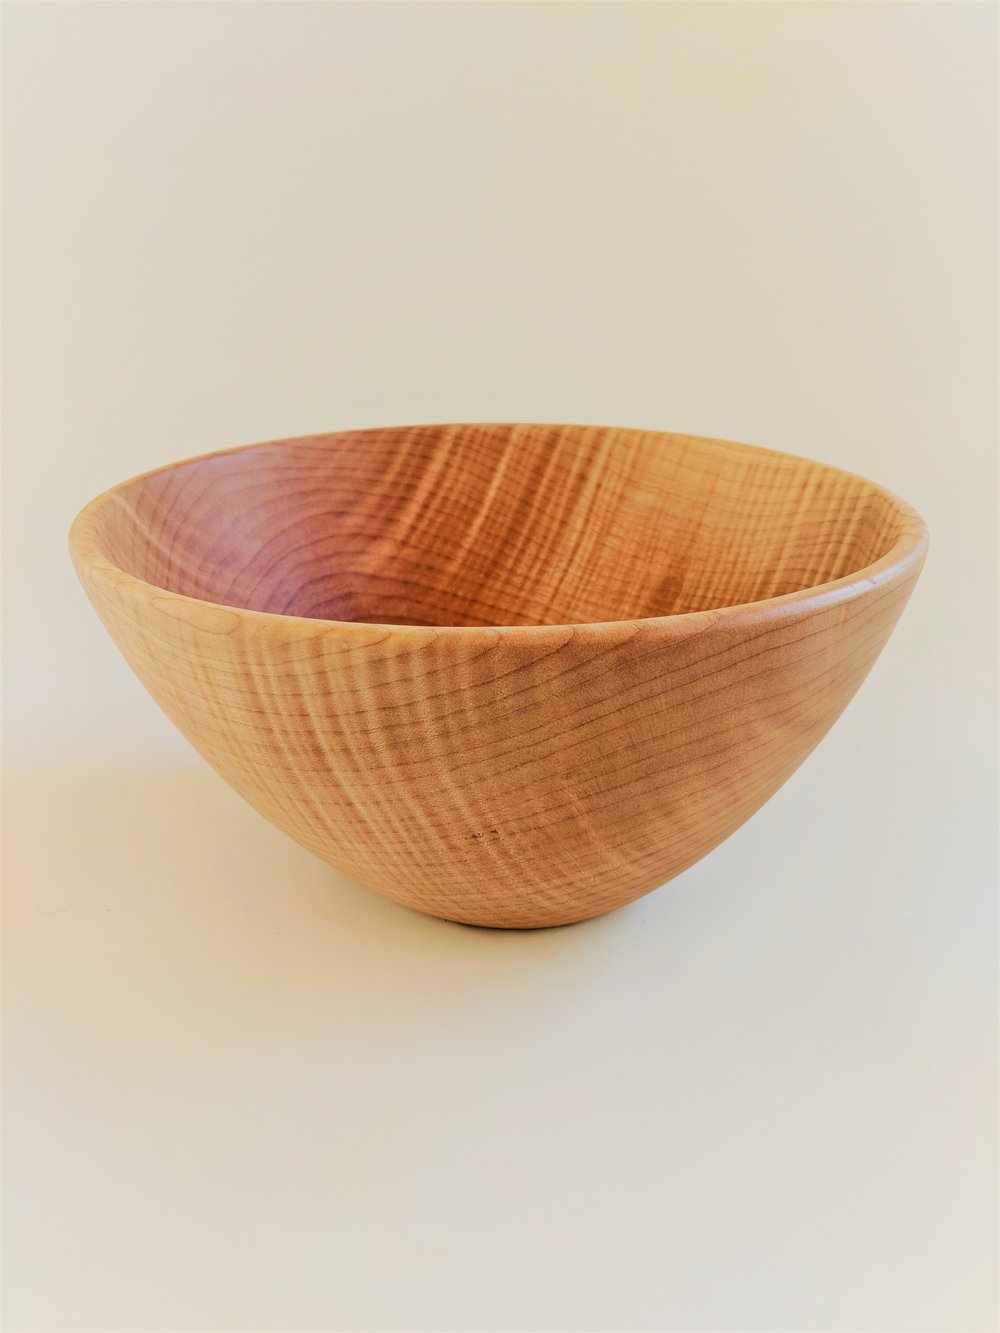 Figured maple salad bowl.  Photo: Pf Woodworking